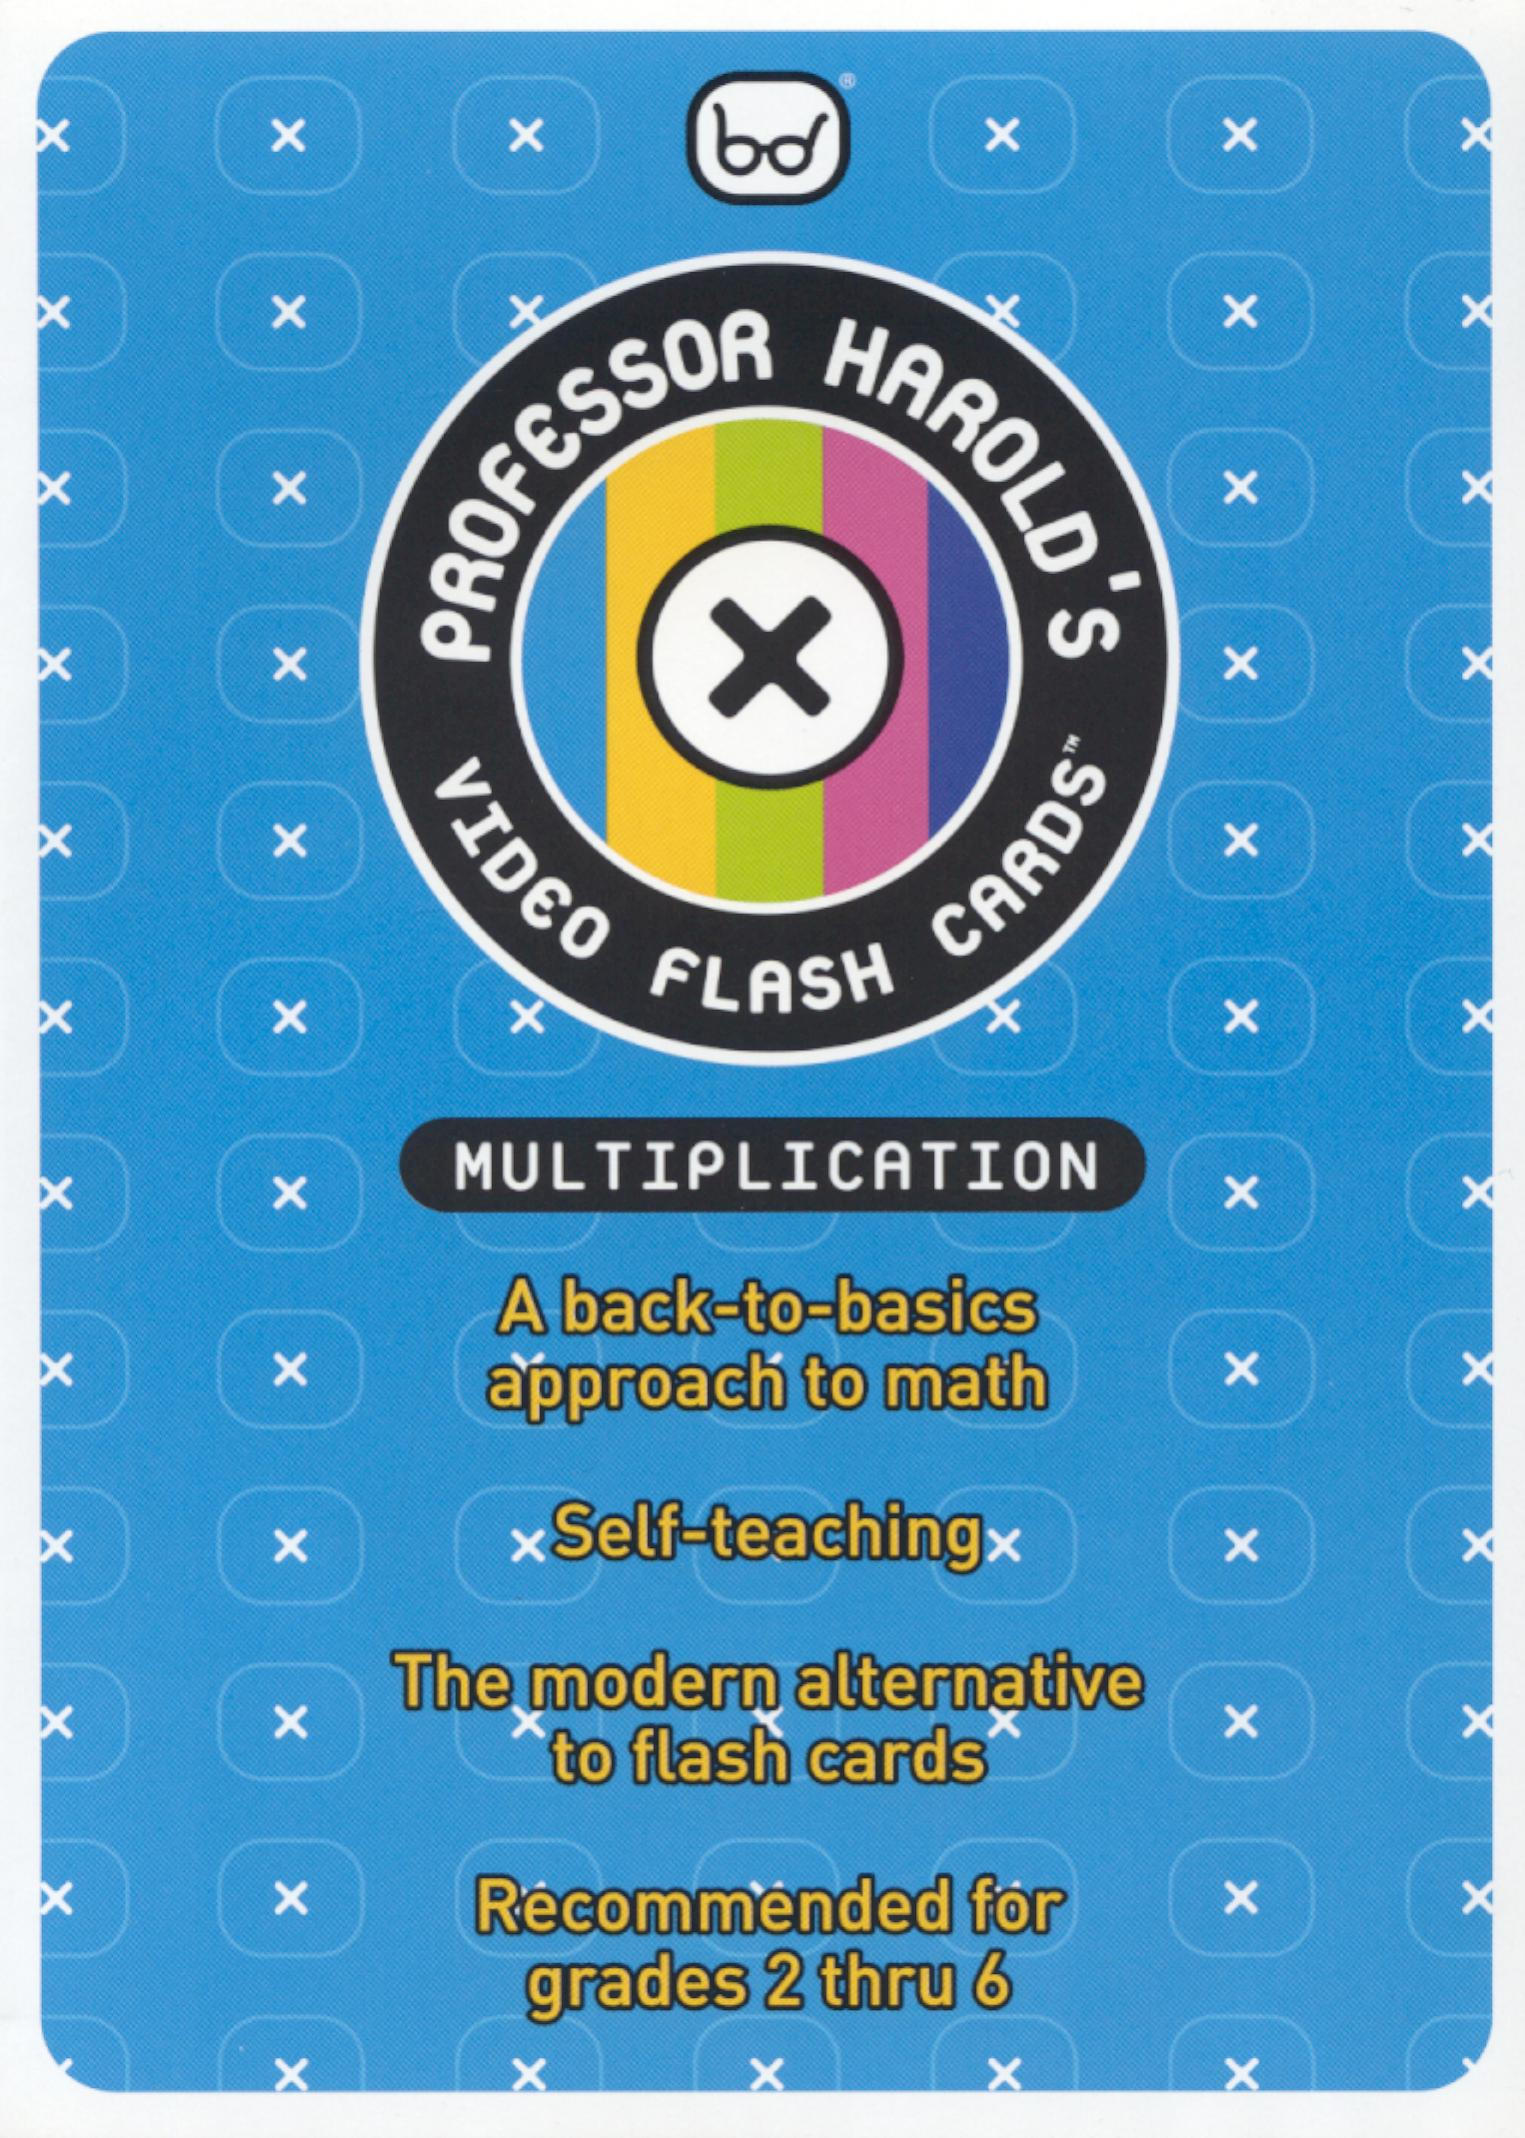 Prof. Harold Video Flash Cards: Multiplication